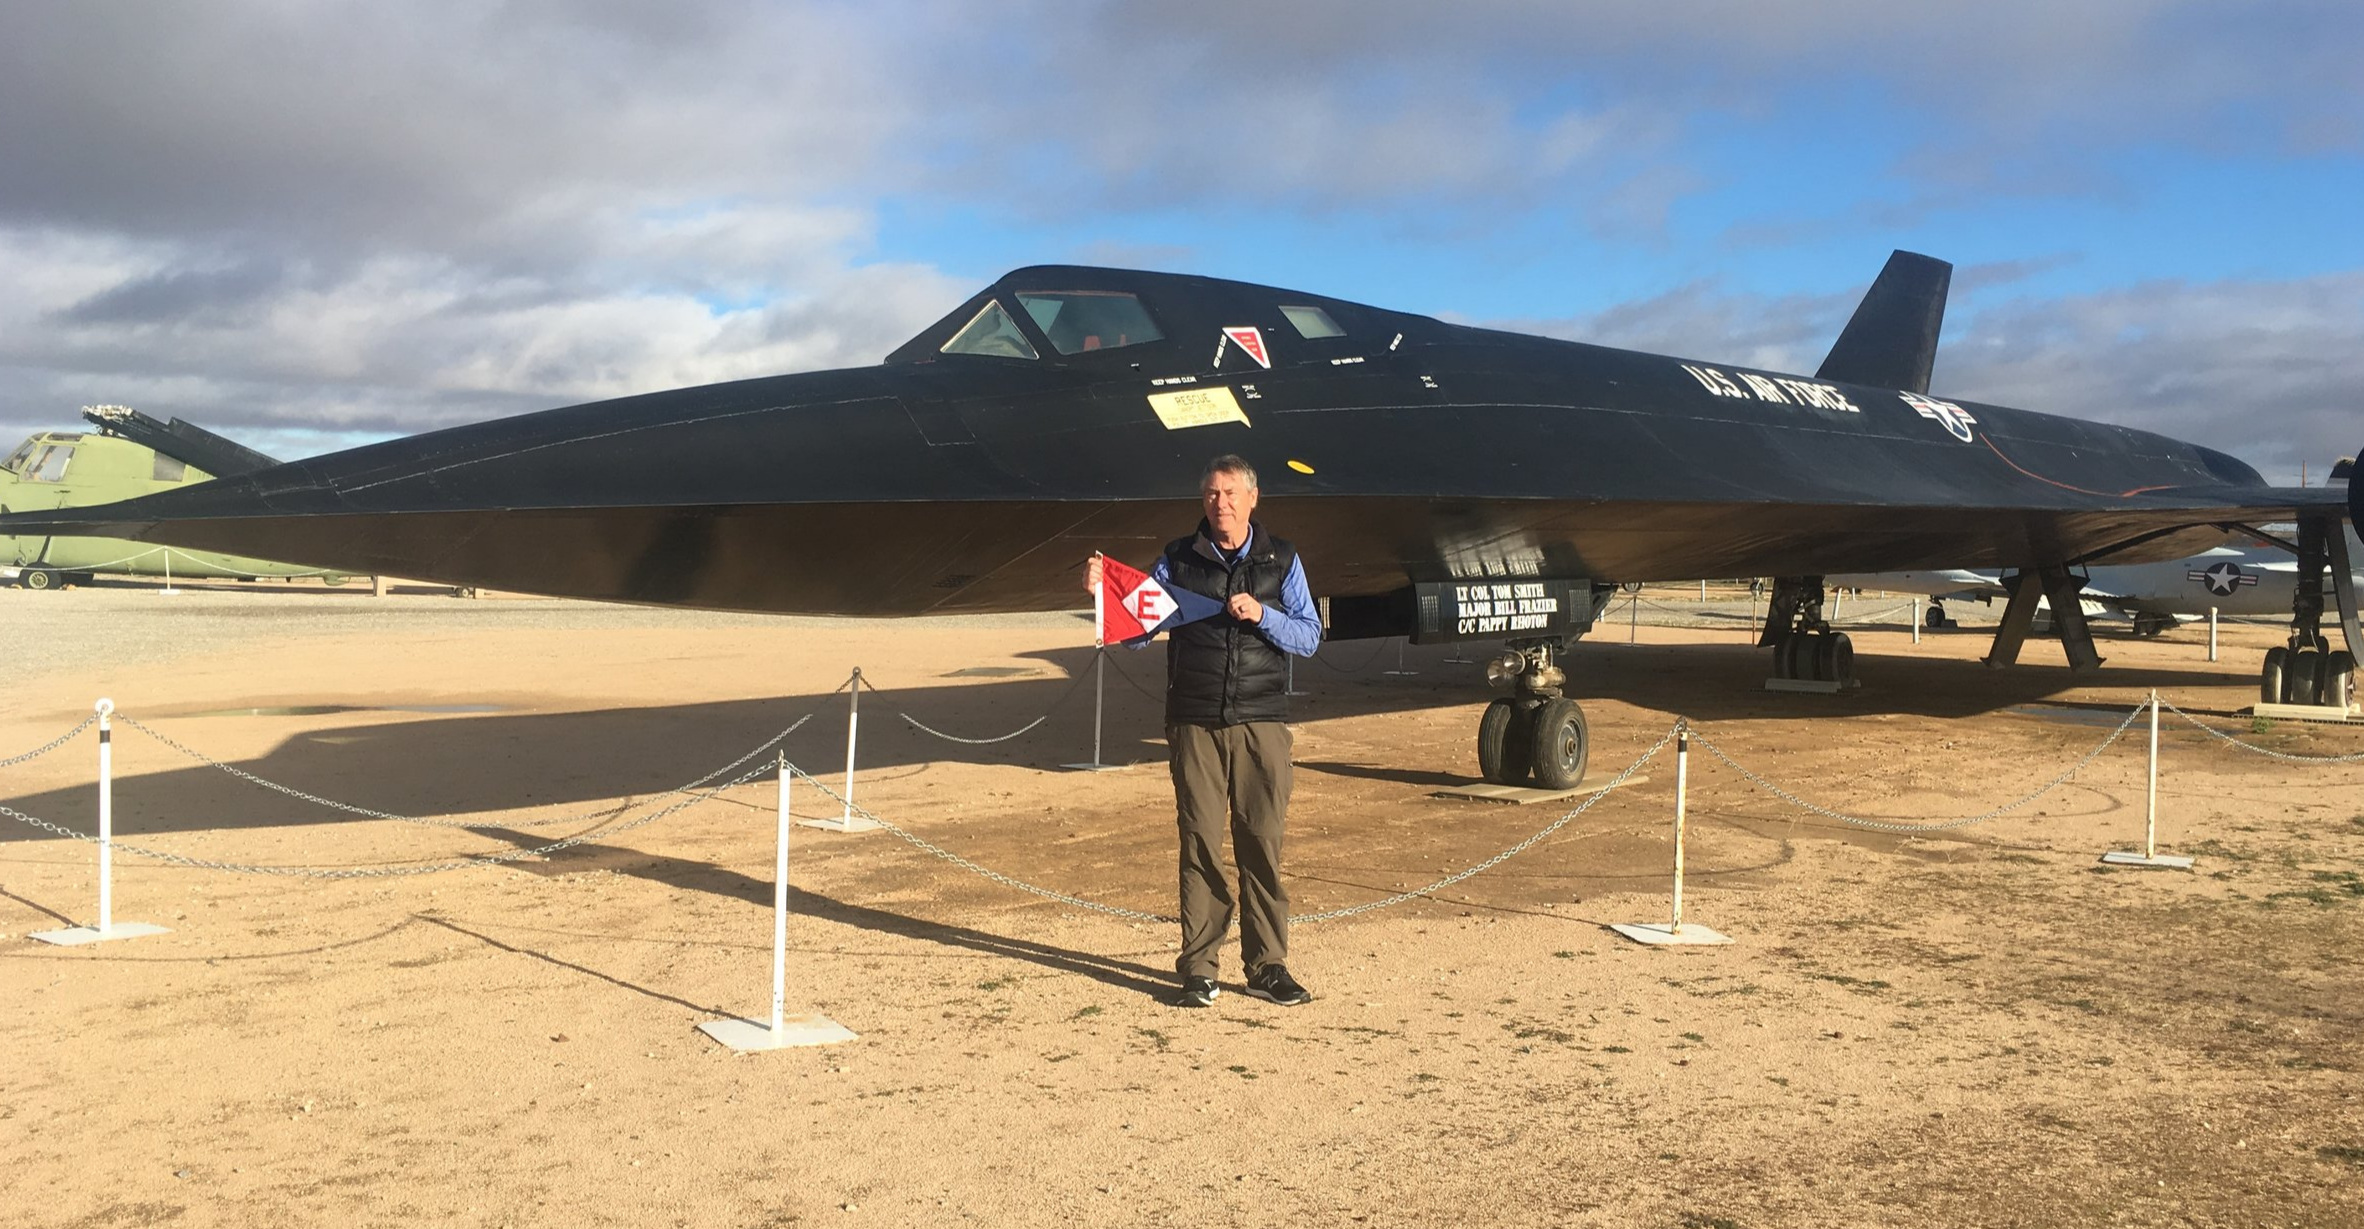 Commodore Bill Boyce shows his EYC pride while at Edwards Air Force Base in California.